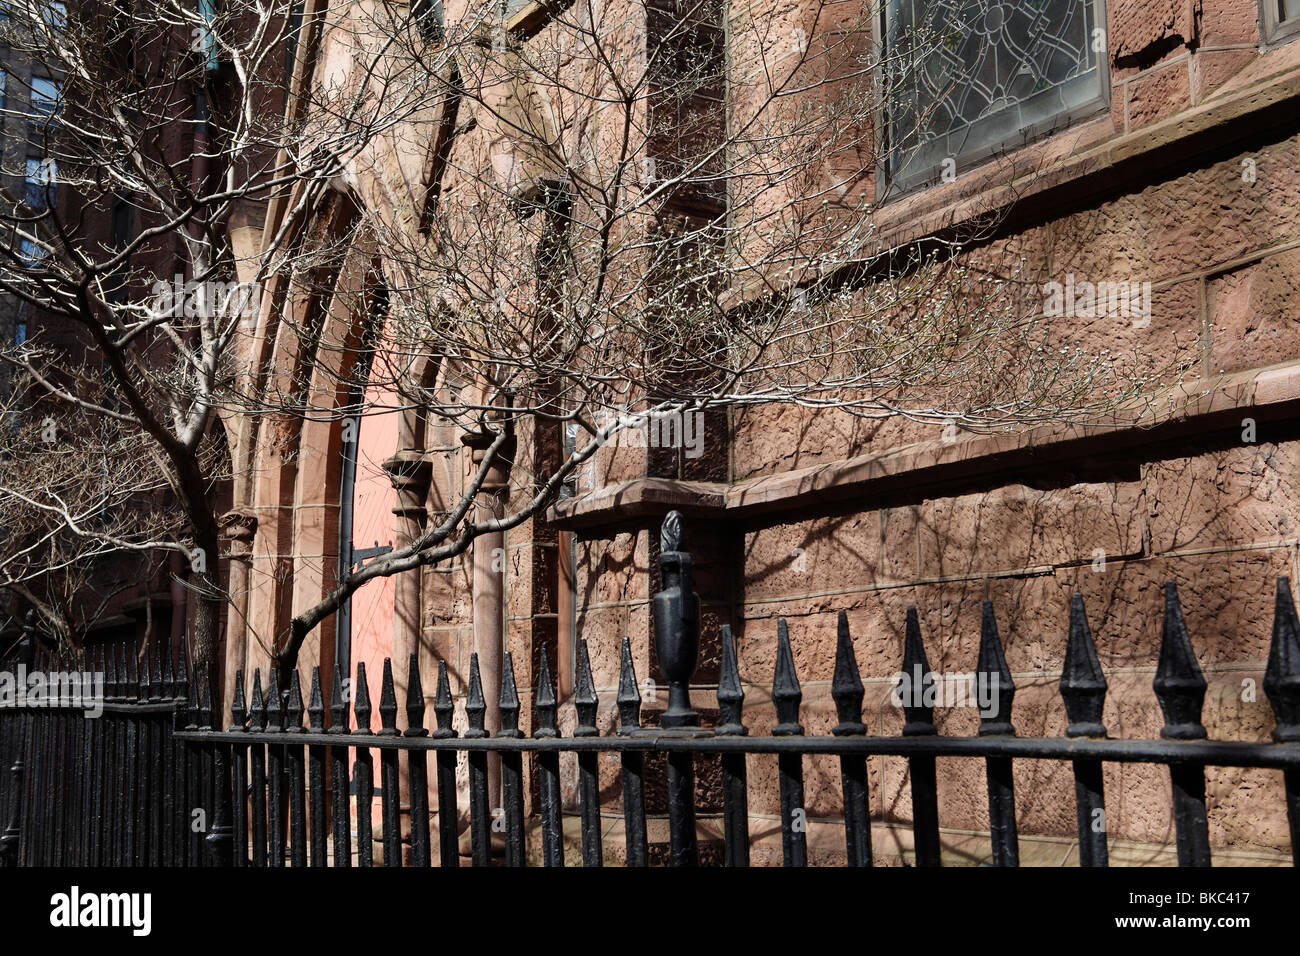 church facade of Calvary Episcopal Church in New York City - Stock Image